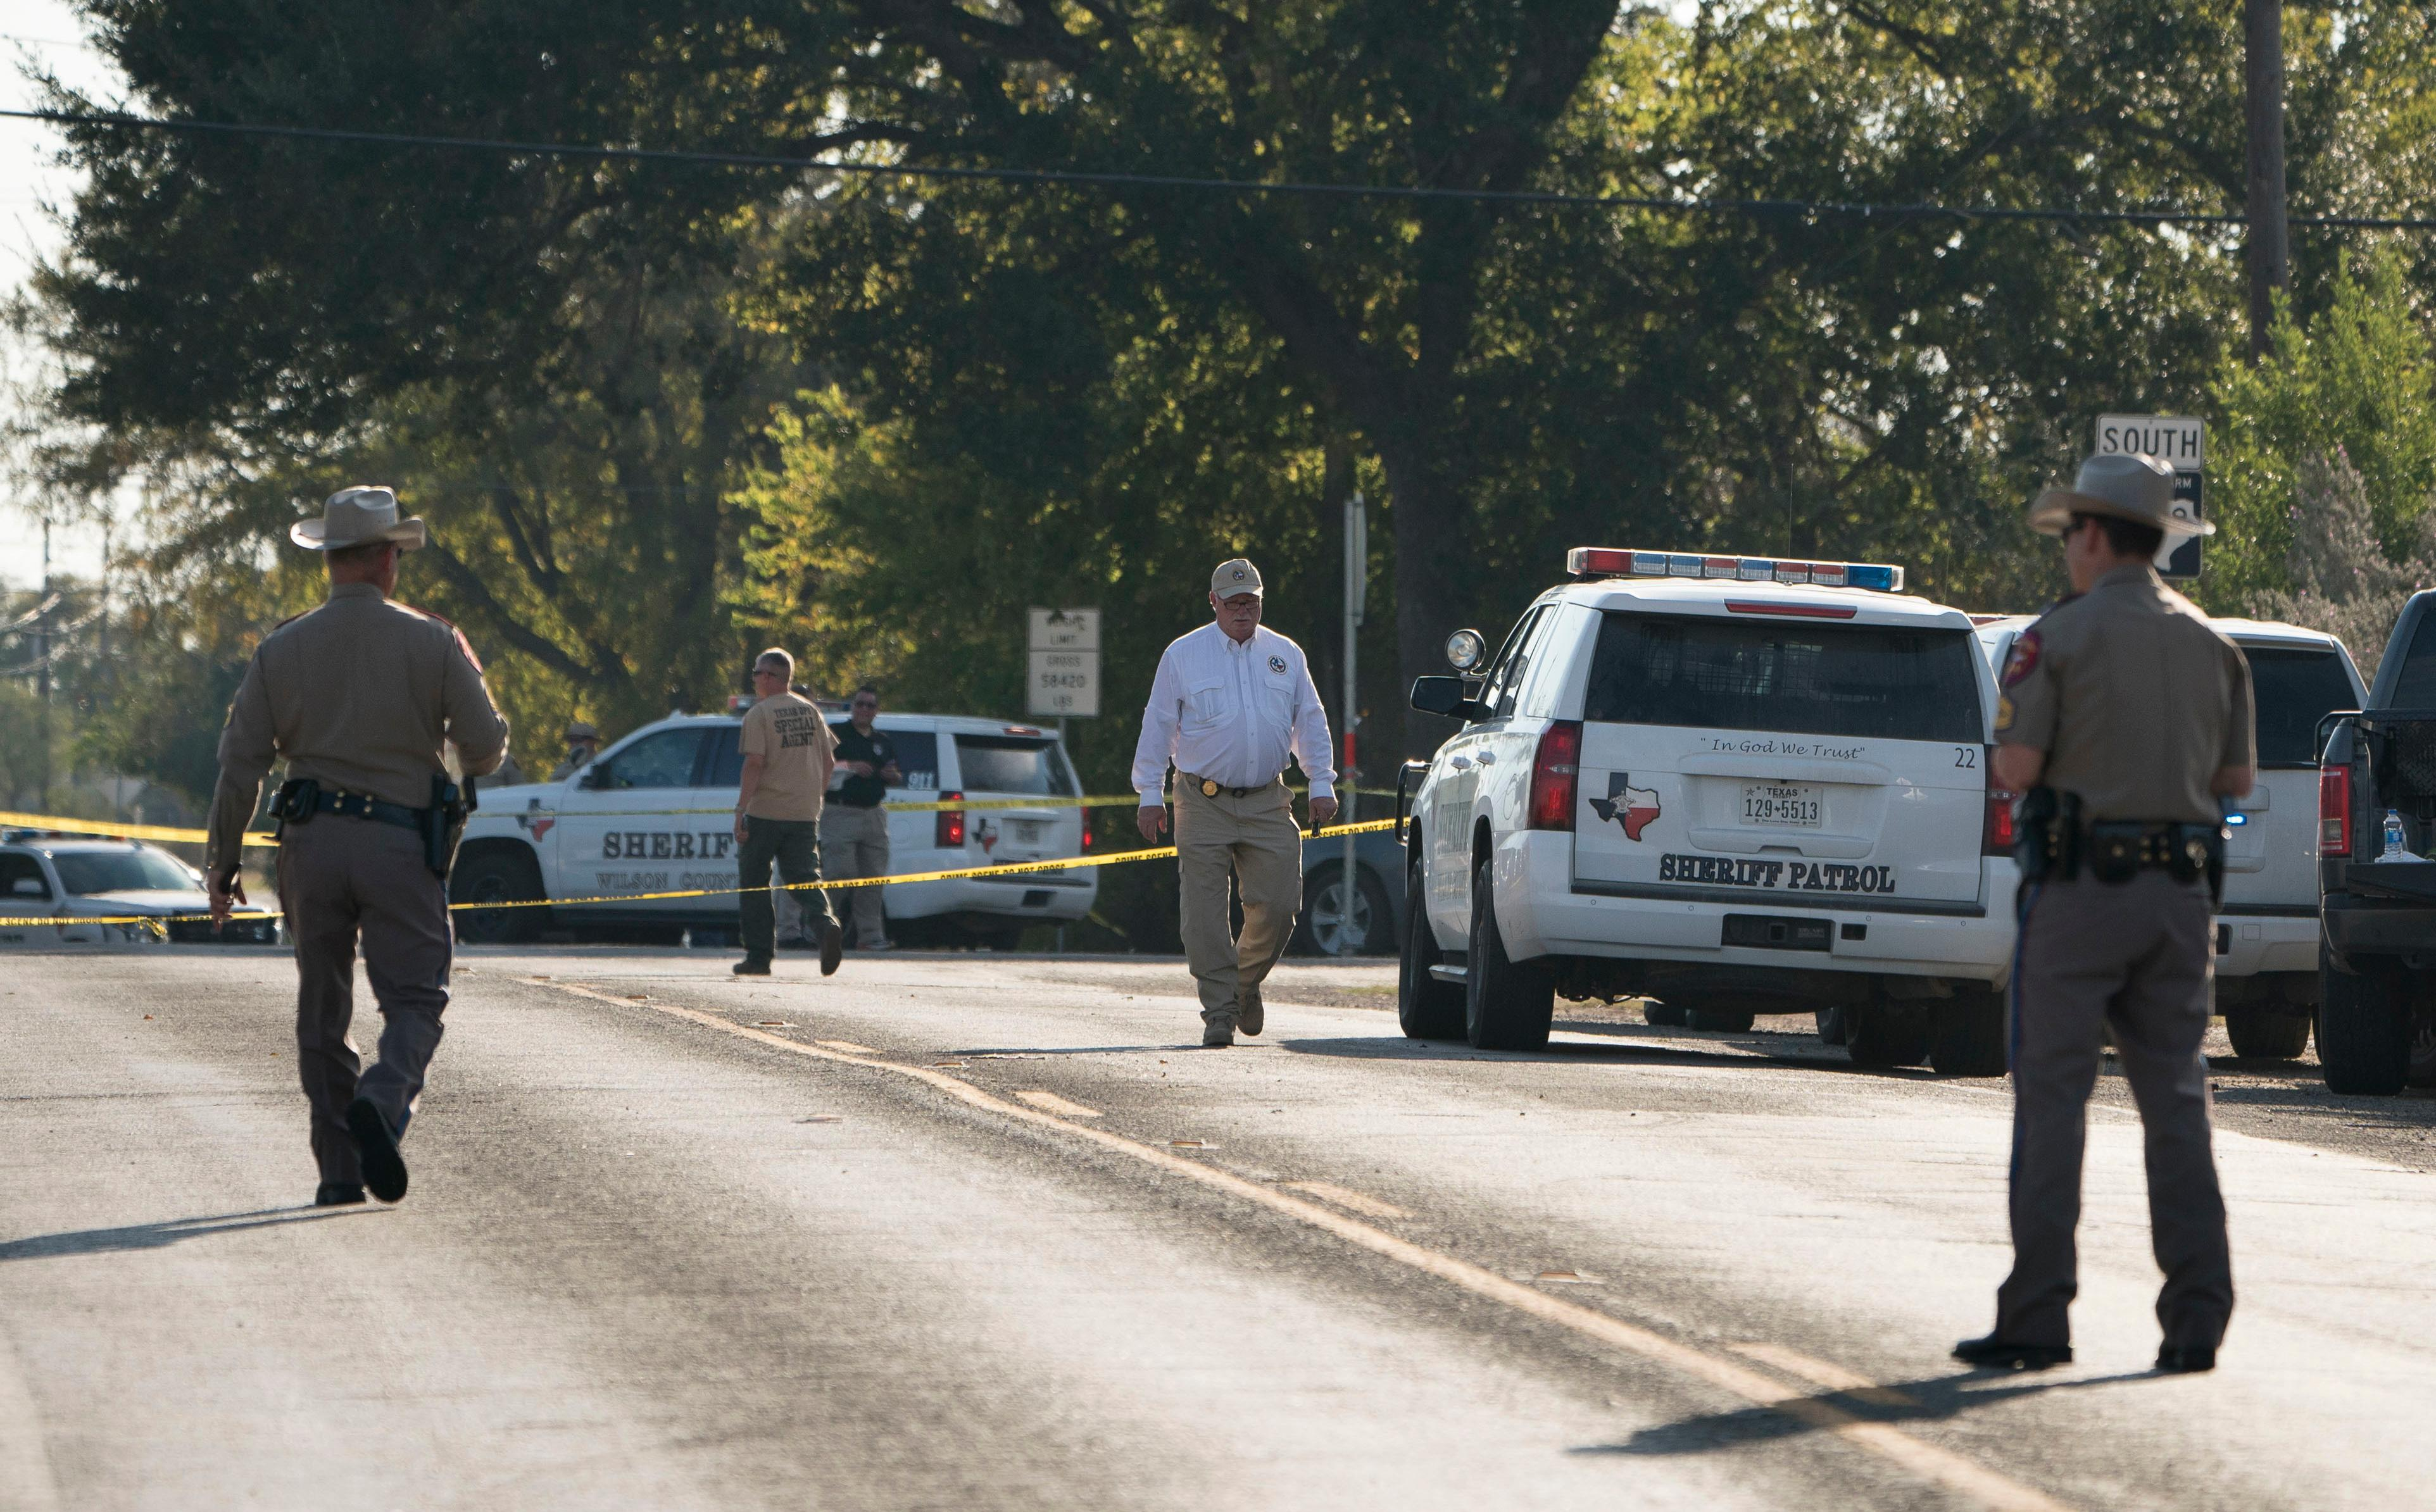 Law enforcement officers work near the First Baptist Church of Sutherland Springs after a fatal shooting, Sunday, Nov. 5, 2017, in Sutherland Springs, Texas. (AP Photo/Darren Abate)